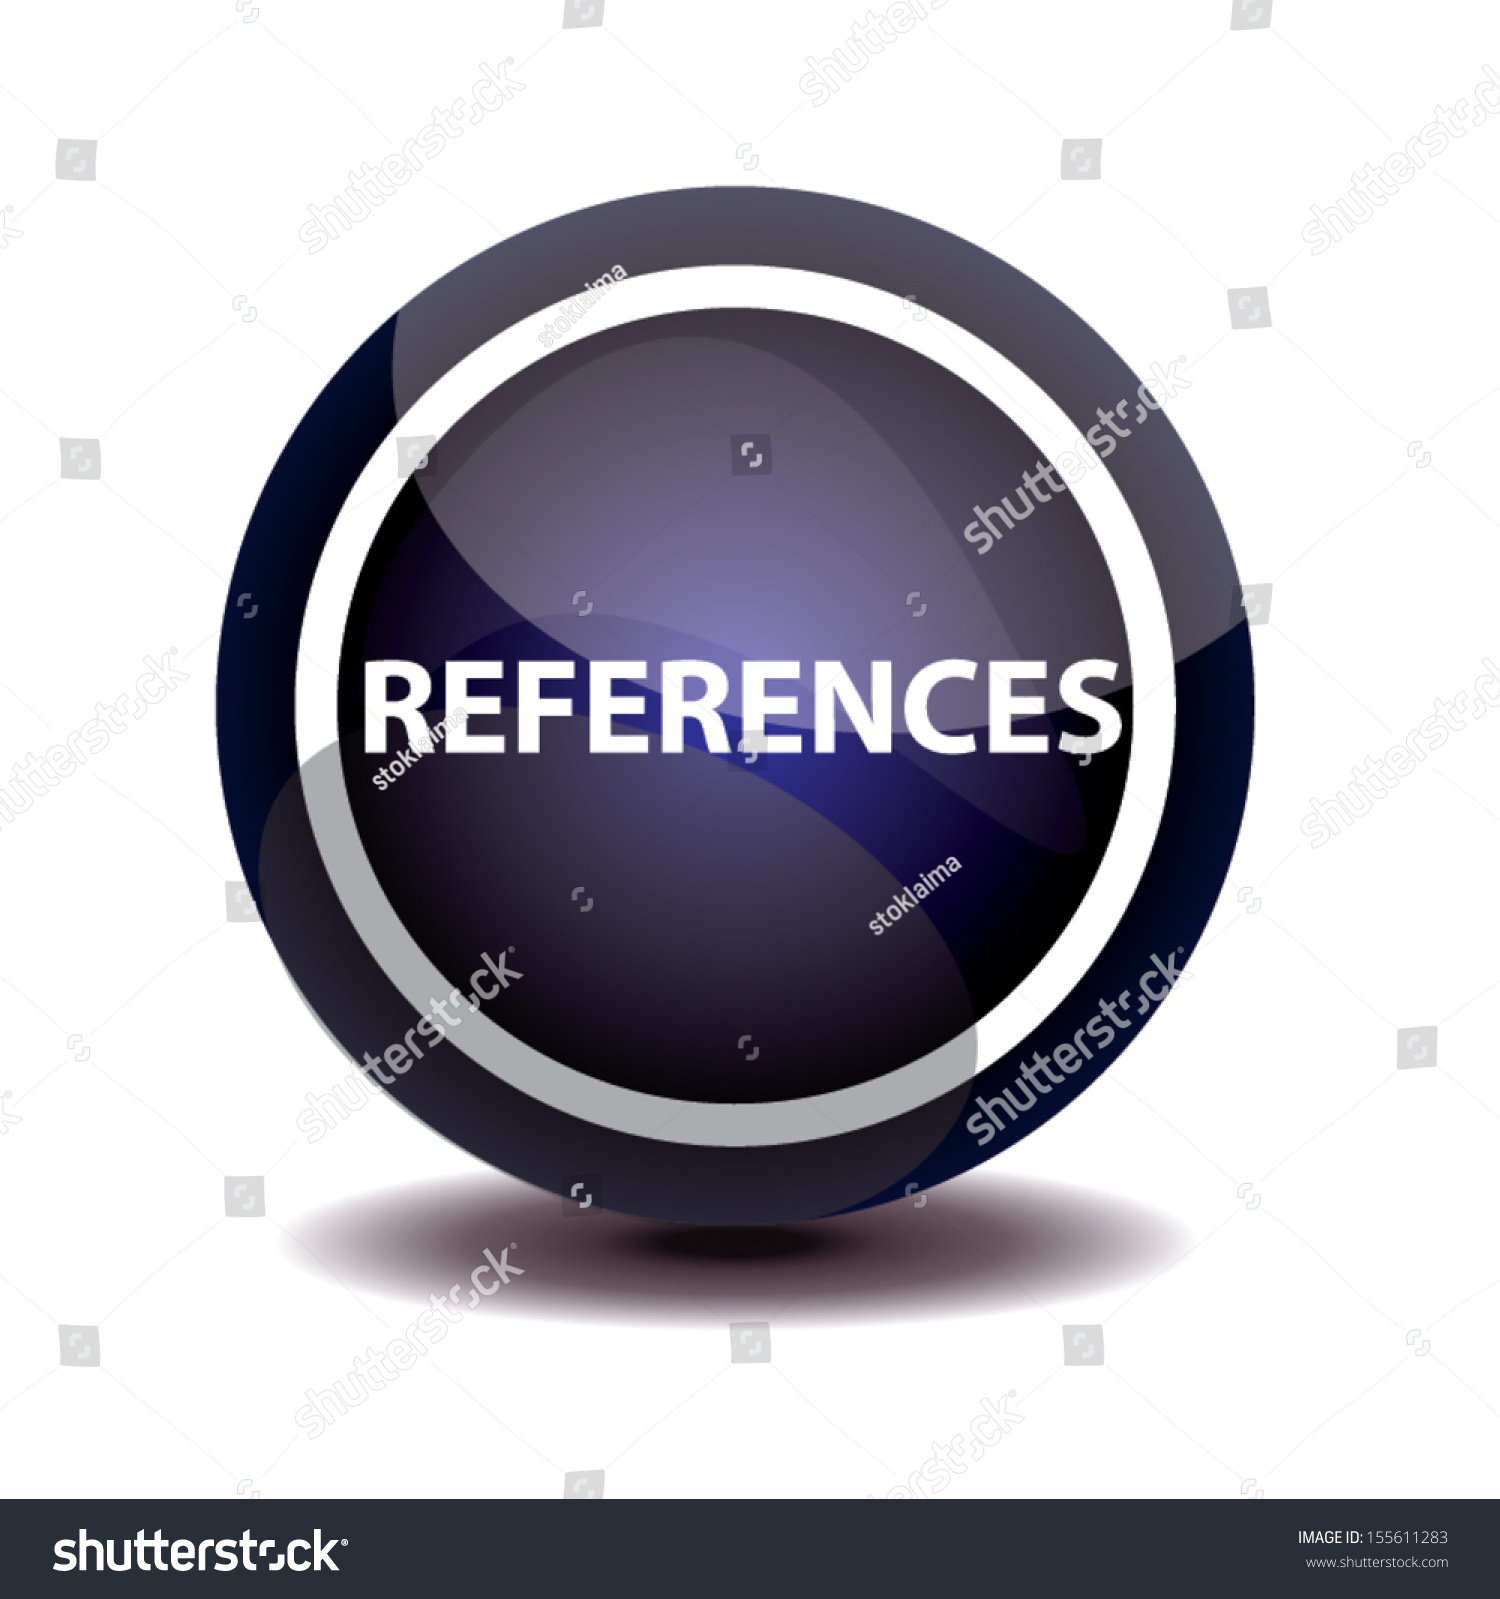 violet references button design vector illustration stock vector violet references button design vector illustration